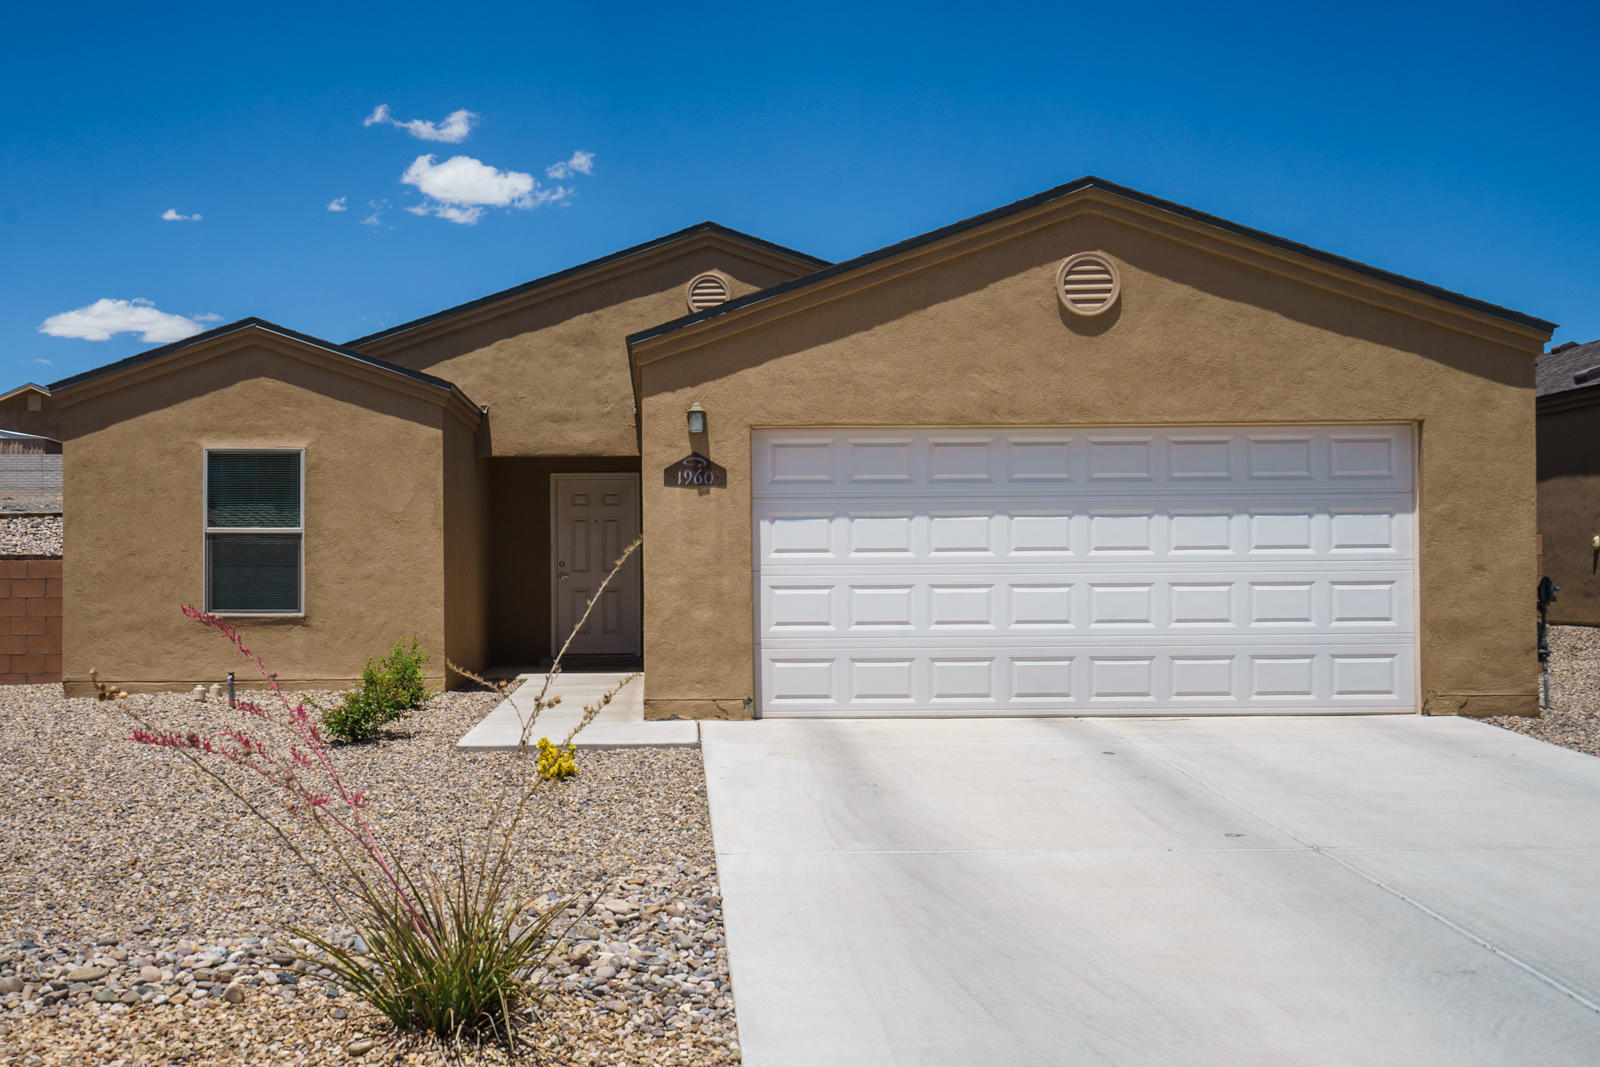 Beautiful home in a great location! 1450 square feet, 3 bedrooms, 2 baths featuring refrigerated air, high ceiling in the living room, and great master suite. Easy access to I-25 and minutes to Albuquerque. Convenient to restaurants, shopping, Walmart, Walgreens, schools & everything you need!